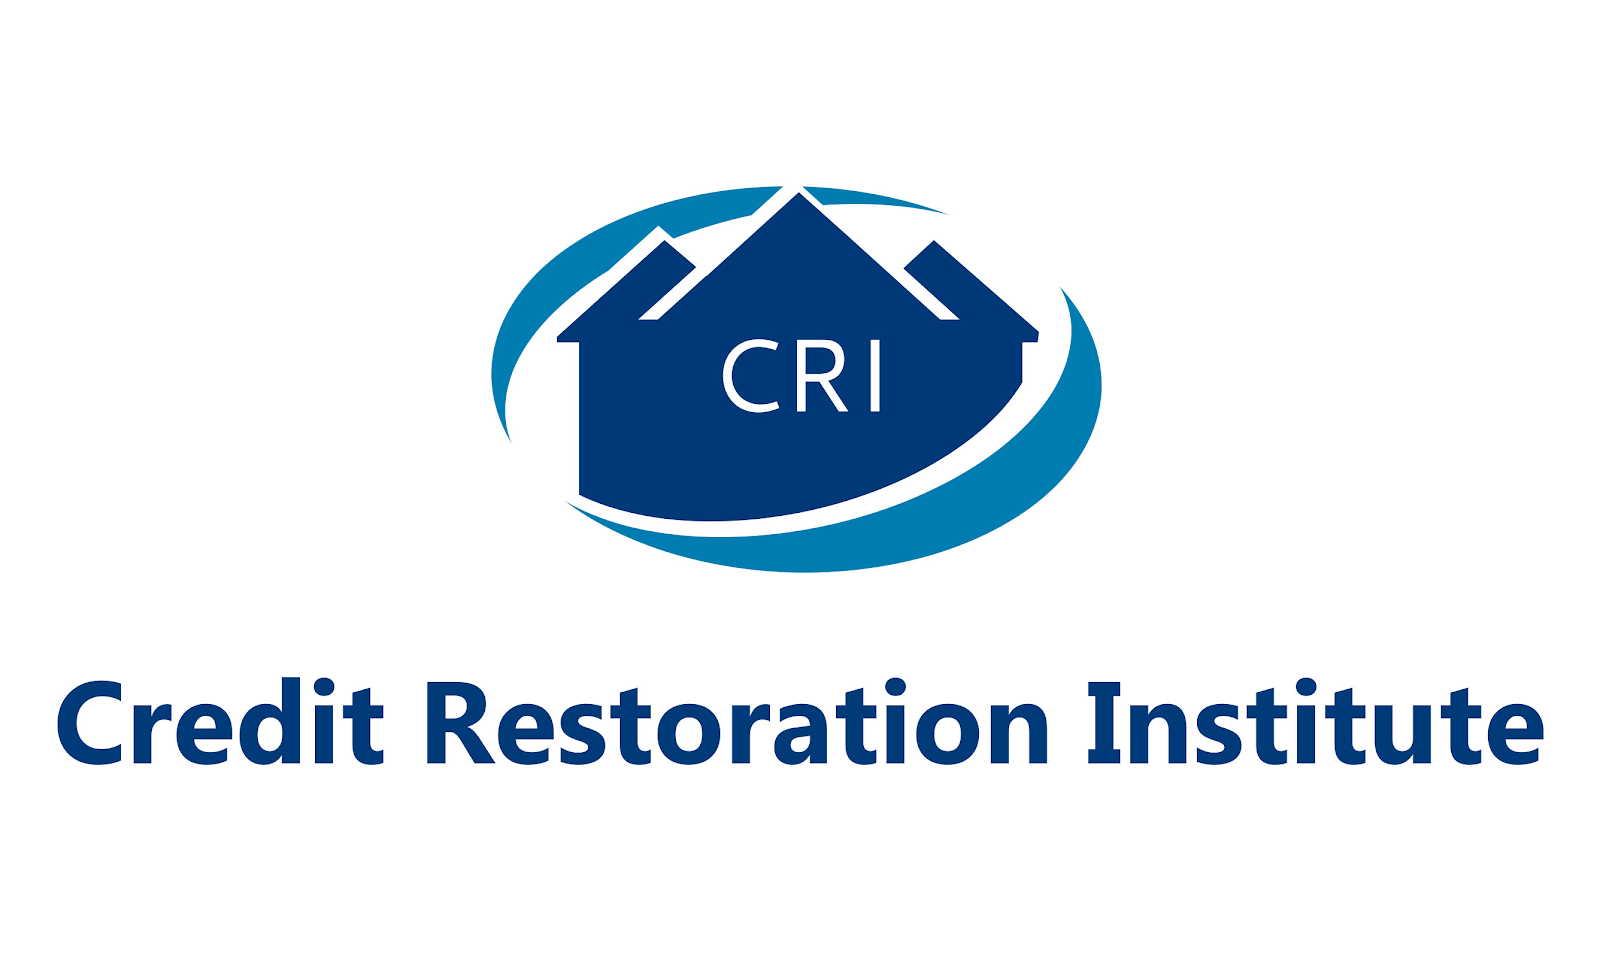 the Credit Restoration Institute